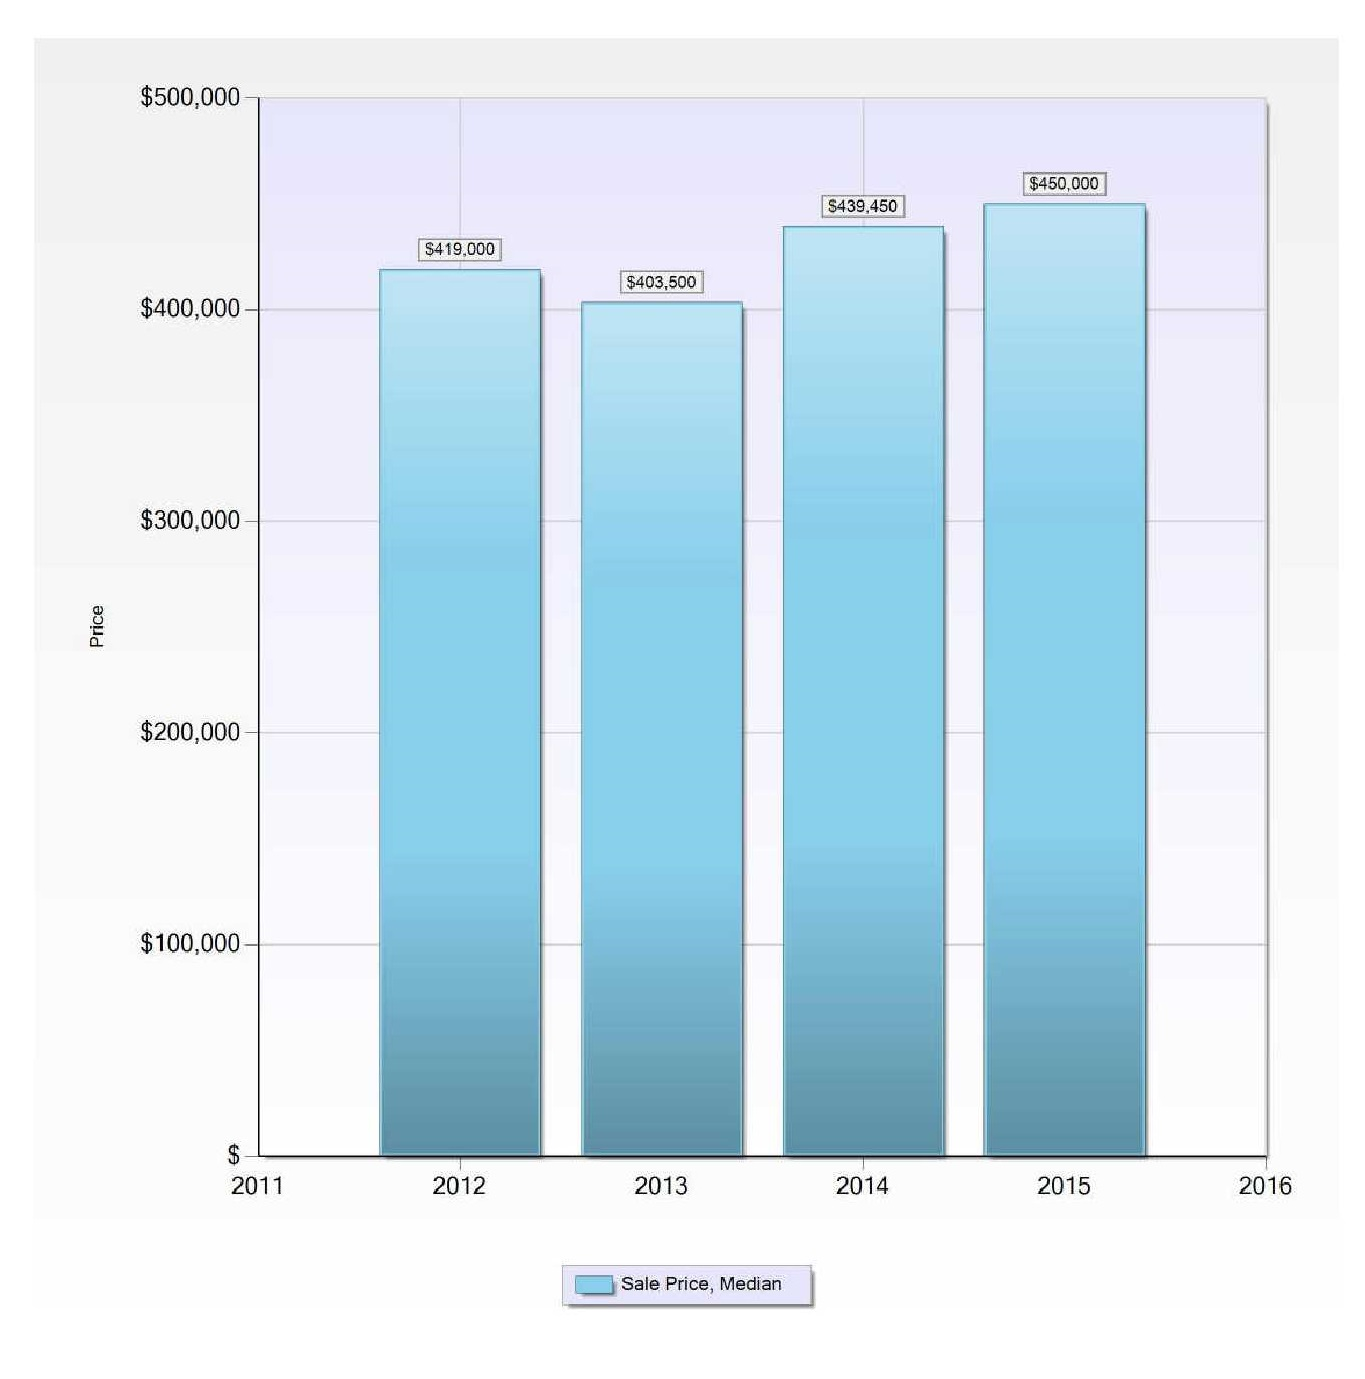 Whistler TOWNHOME CONDO Median Sale Price_2012-2015.jpg